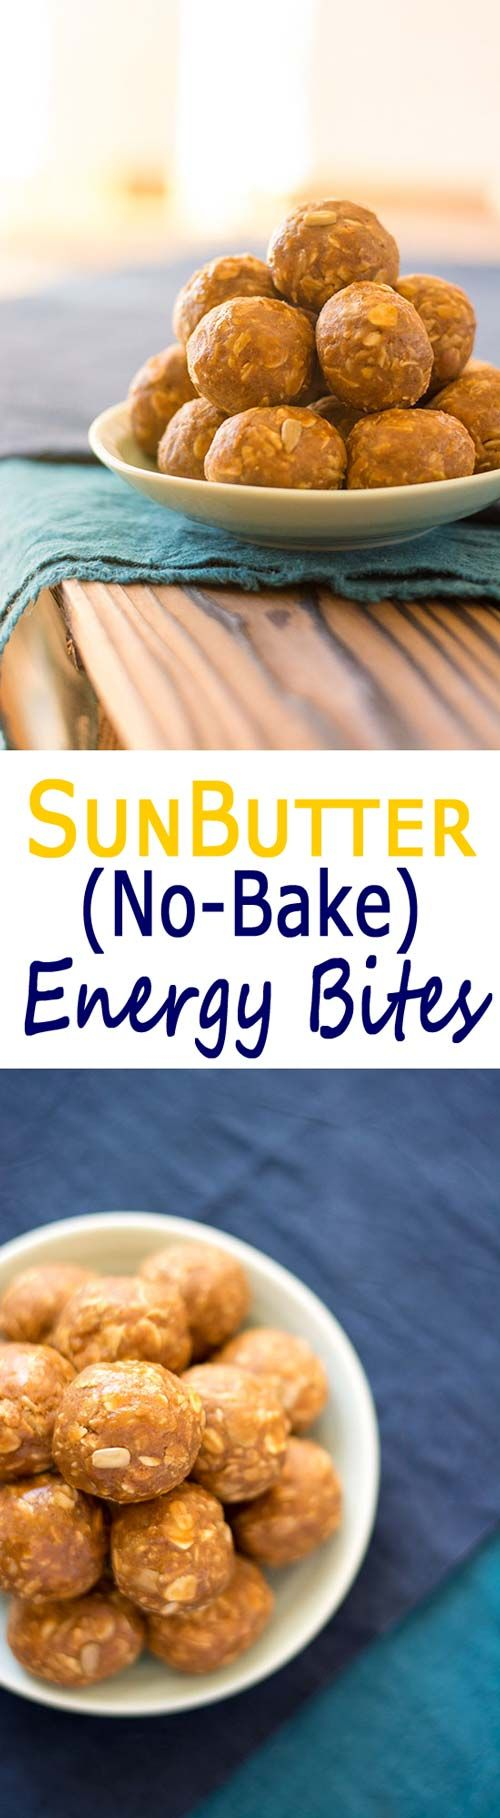 Energy bites, No bake energy bites and Healthy snacks on Pinterest